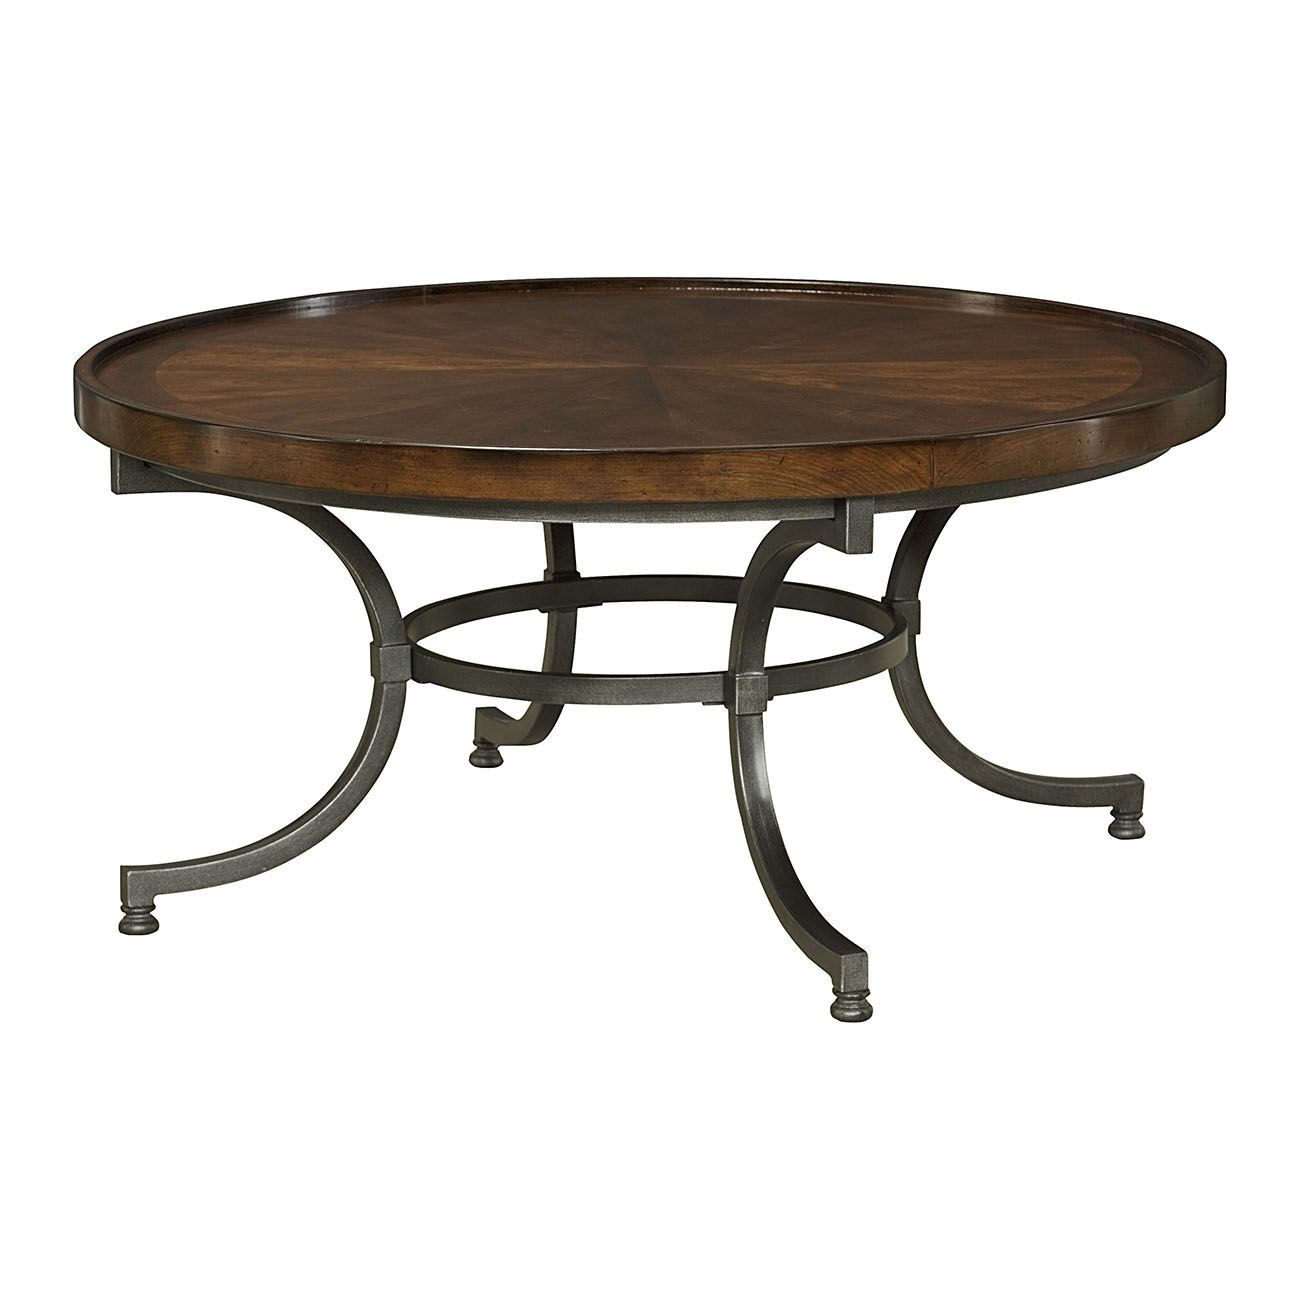 Hammary Barrow Collection Round Cocktail Table Round Coffee Table Round Cocktail Tables Coffee Table [ 1300 x 1300 Pixel ]